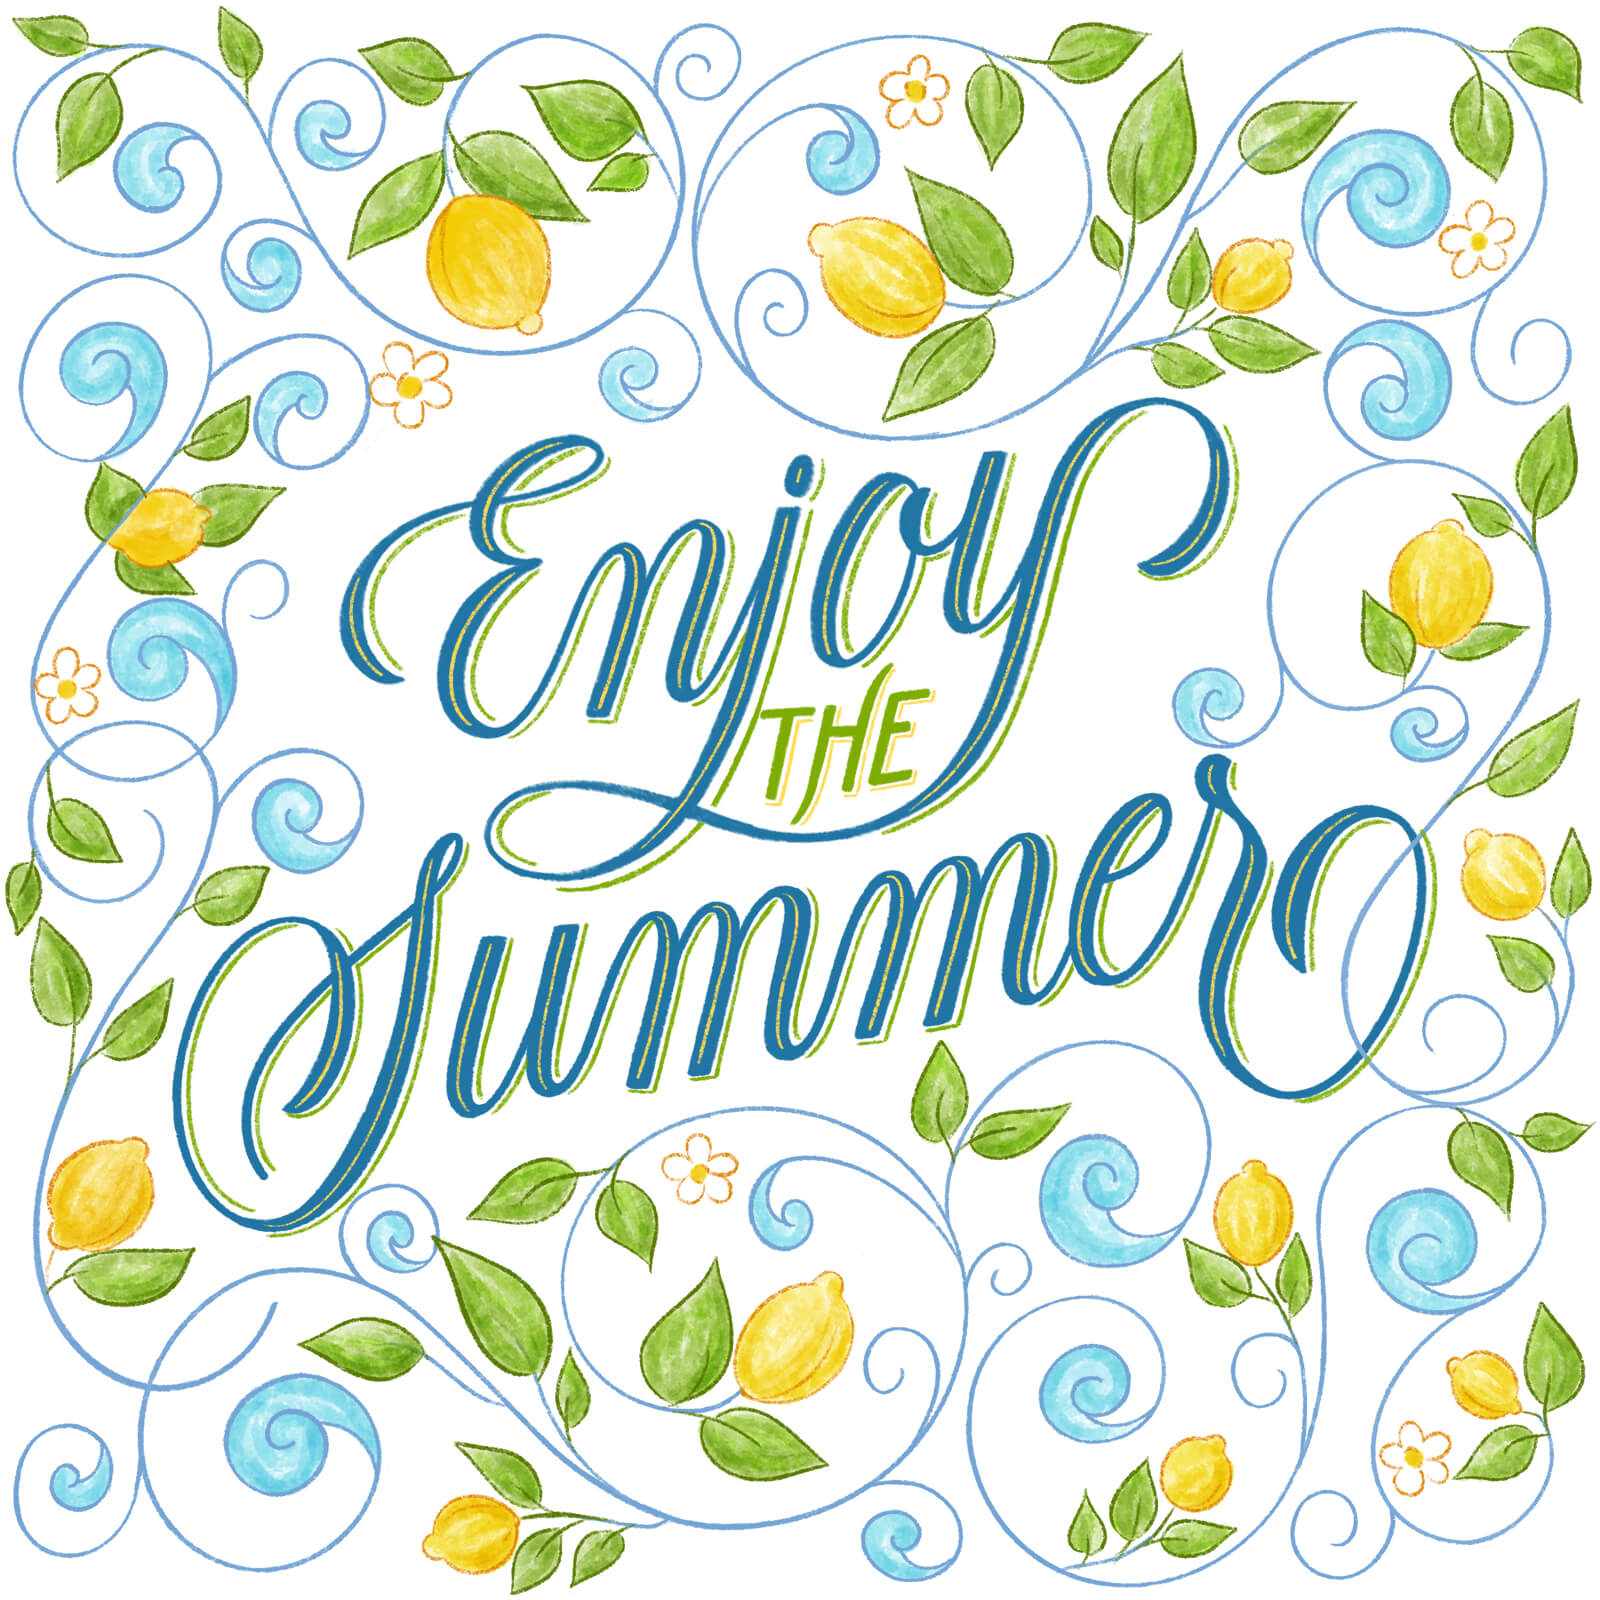 Enjoy The Summer - Corina Moscu